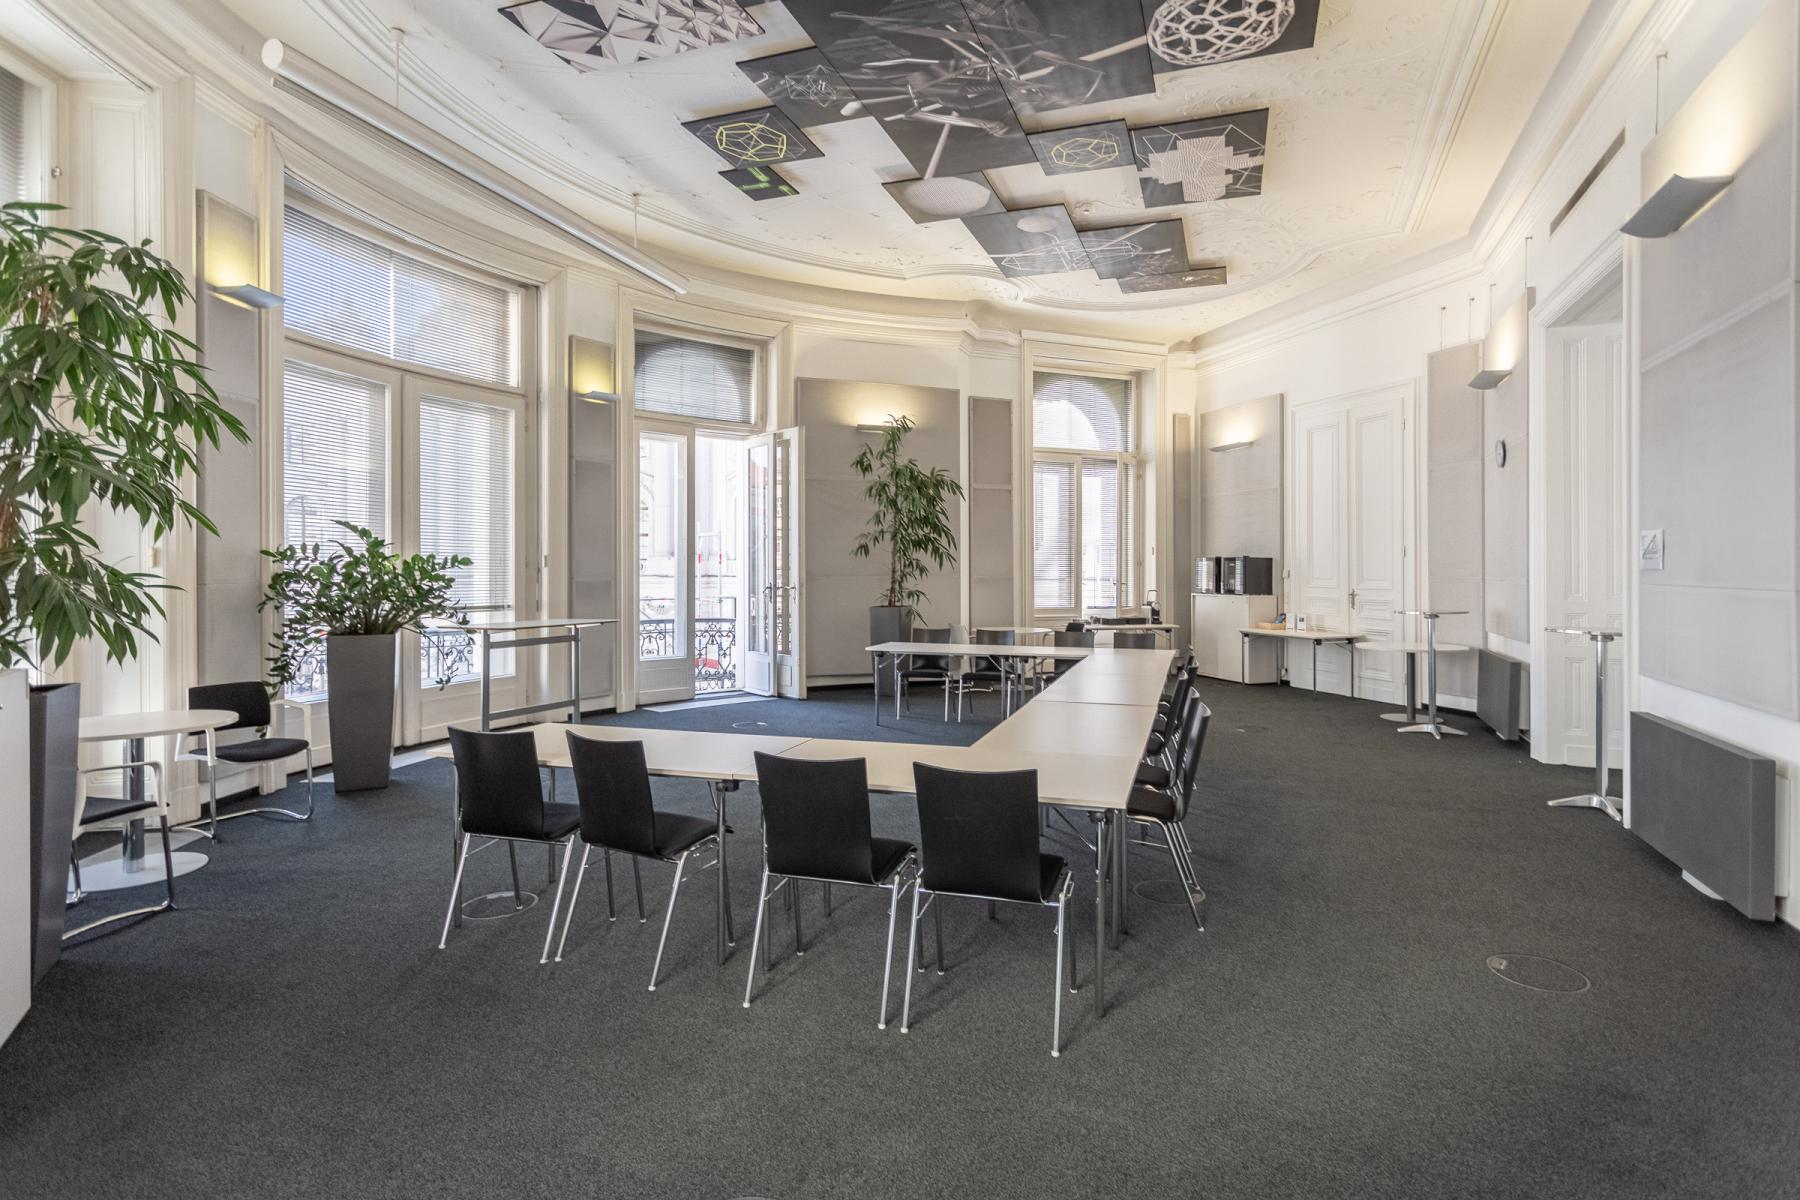 Representative meeting rooms in the business center Vienna district 1